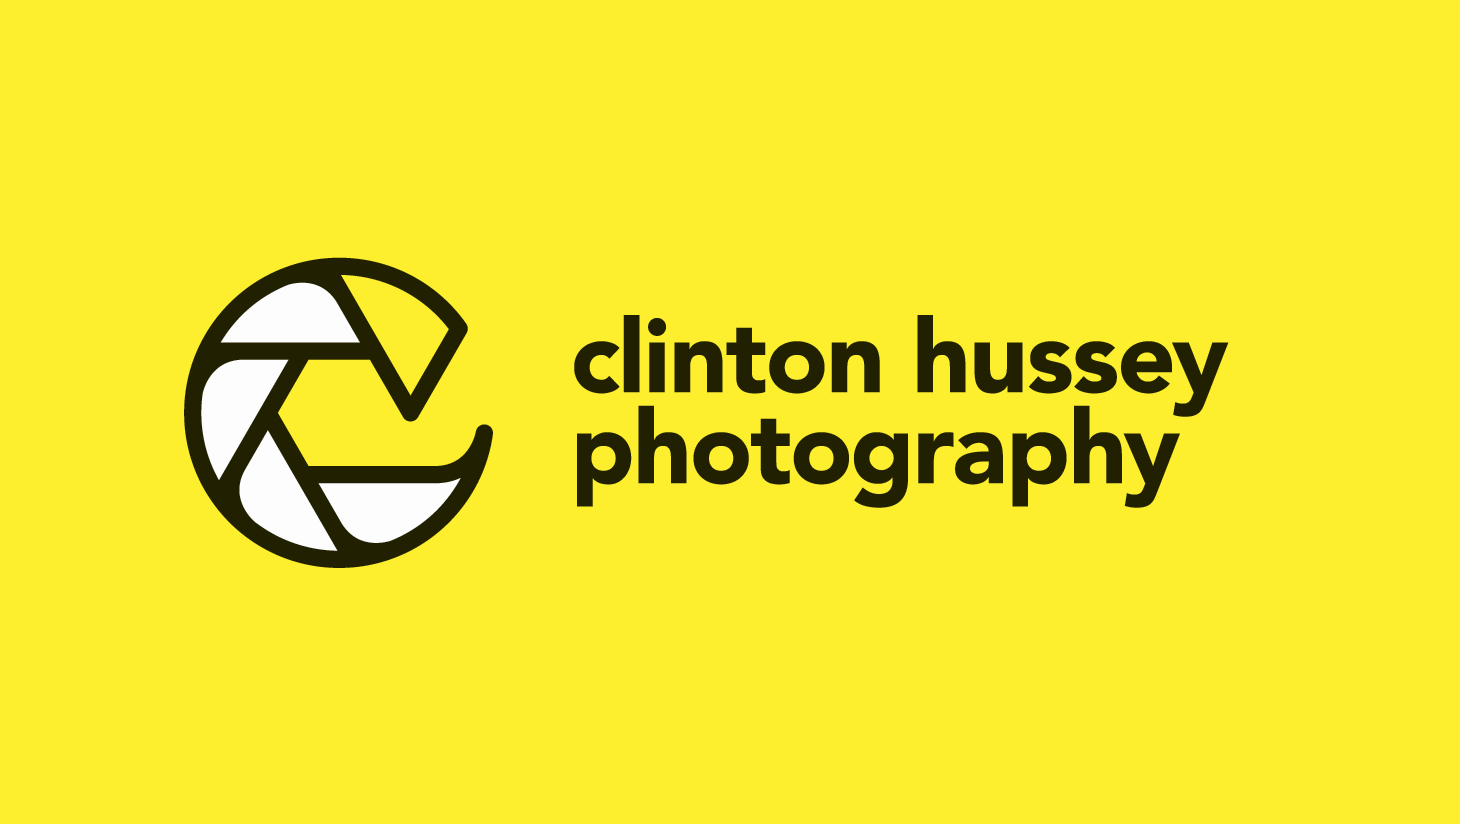 Clinton Hussey Photography Branding Get Revisited by Subplot Design Inc